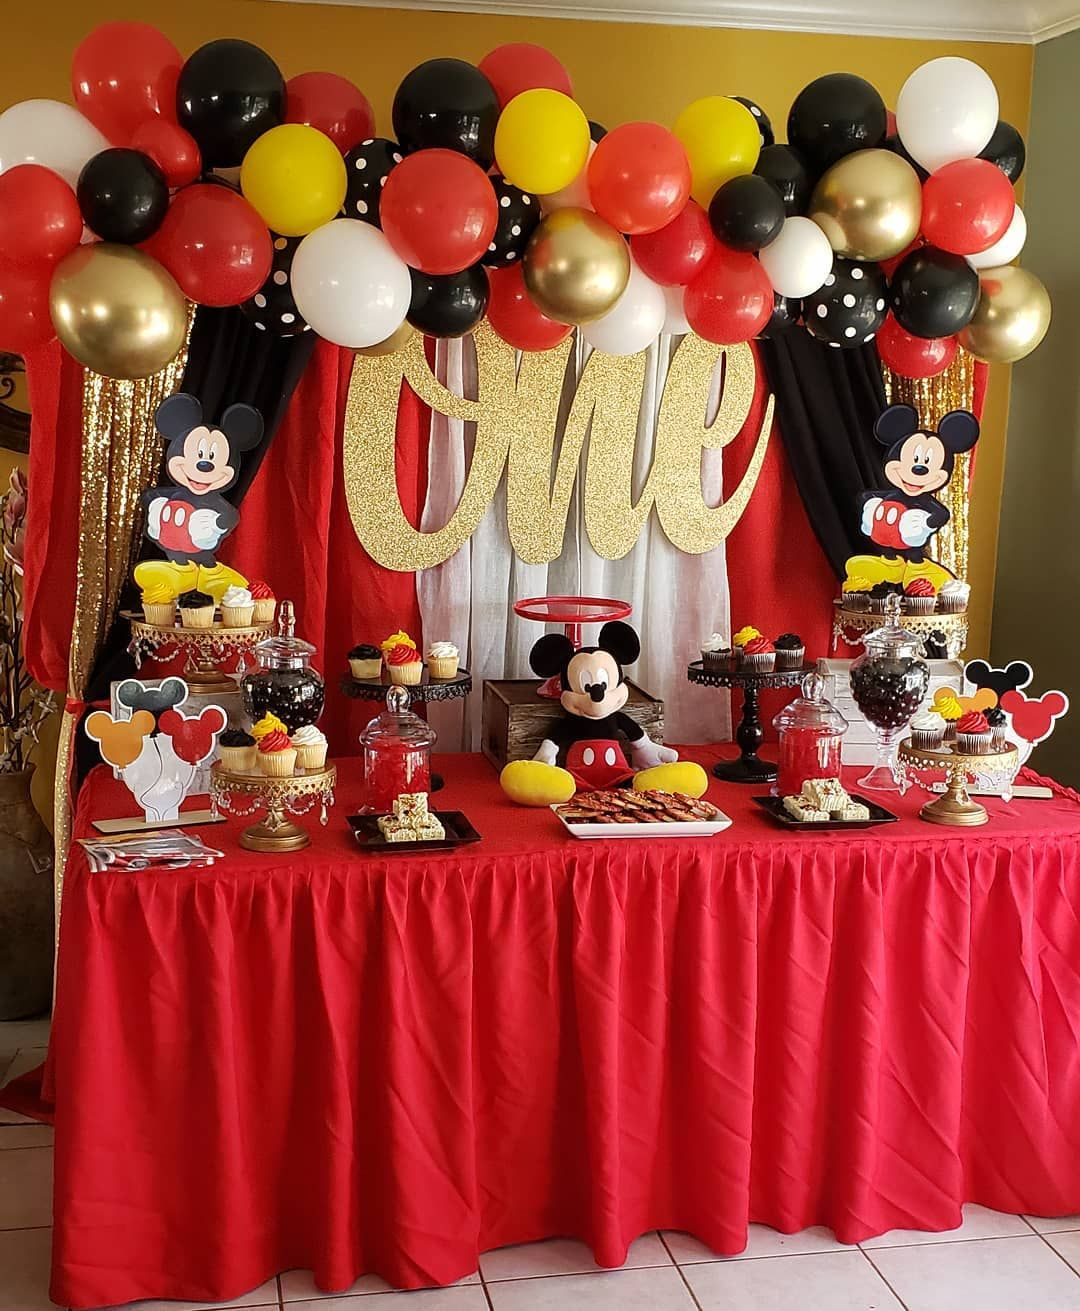 25 Disney First Birthday Party Themes That Are So Good Walt Mickey Mouse Themed Birthday Party Mickey Mouse Theme Party Mickey Mouse Clubhouse Birthday Party